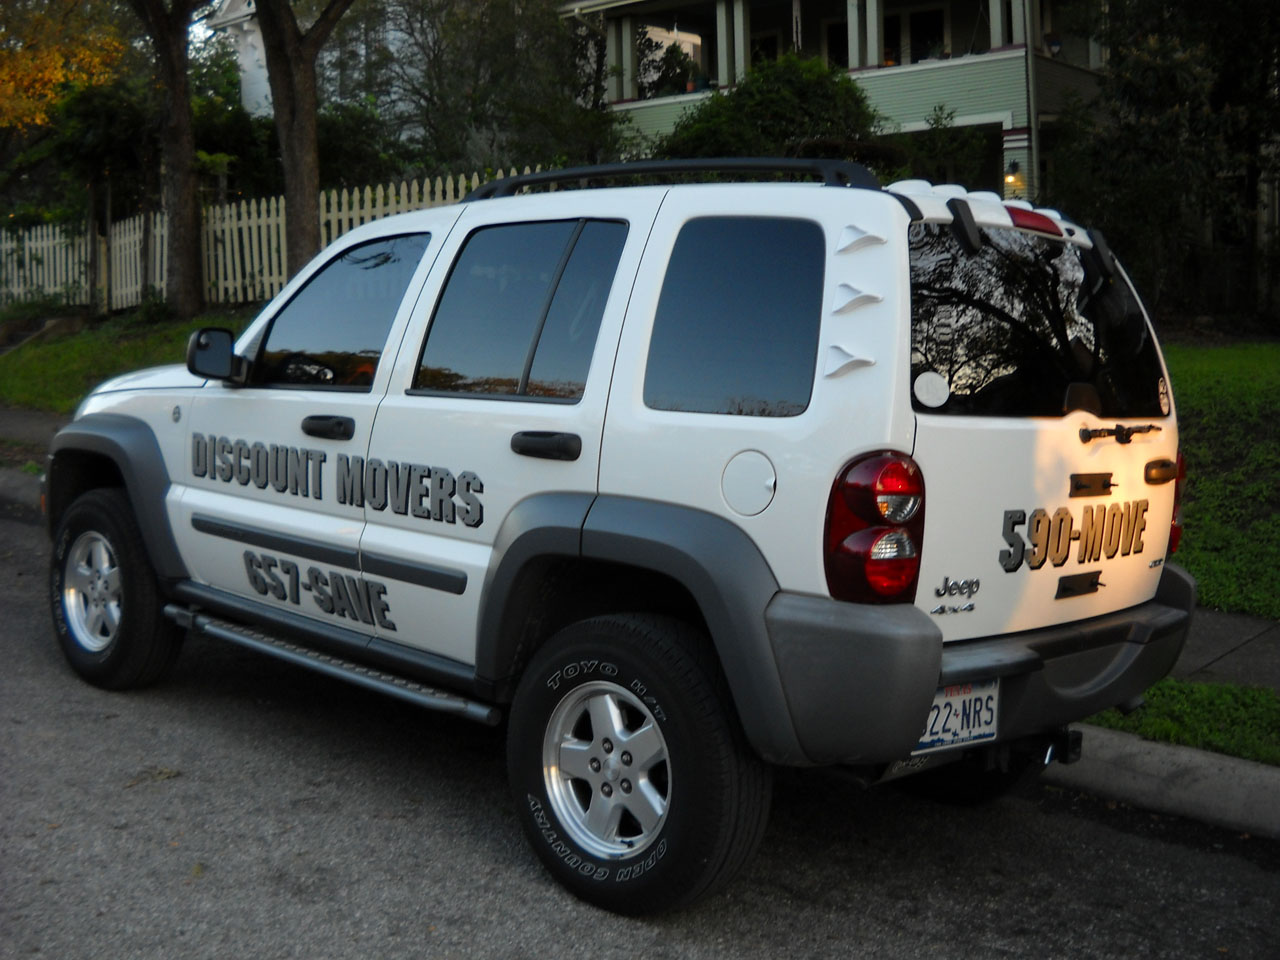 2006 Jeep Liberty - pictures, information and specs - Auto ...